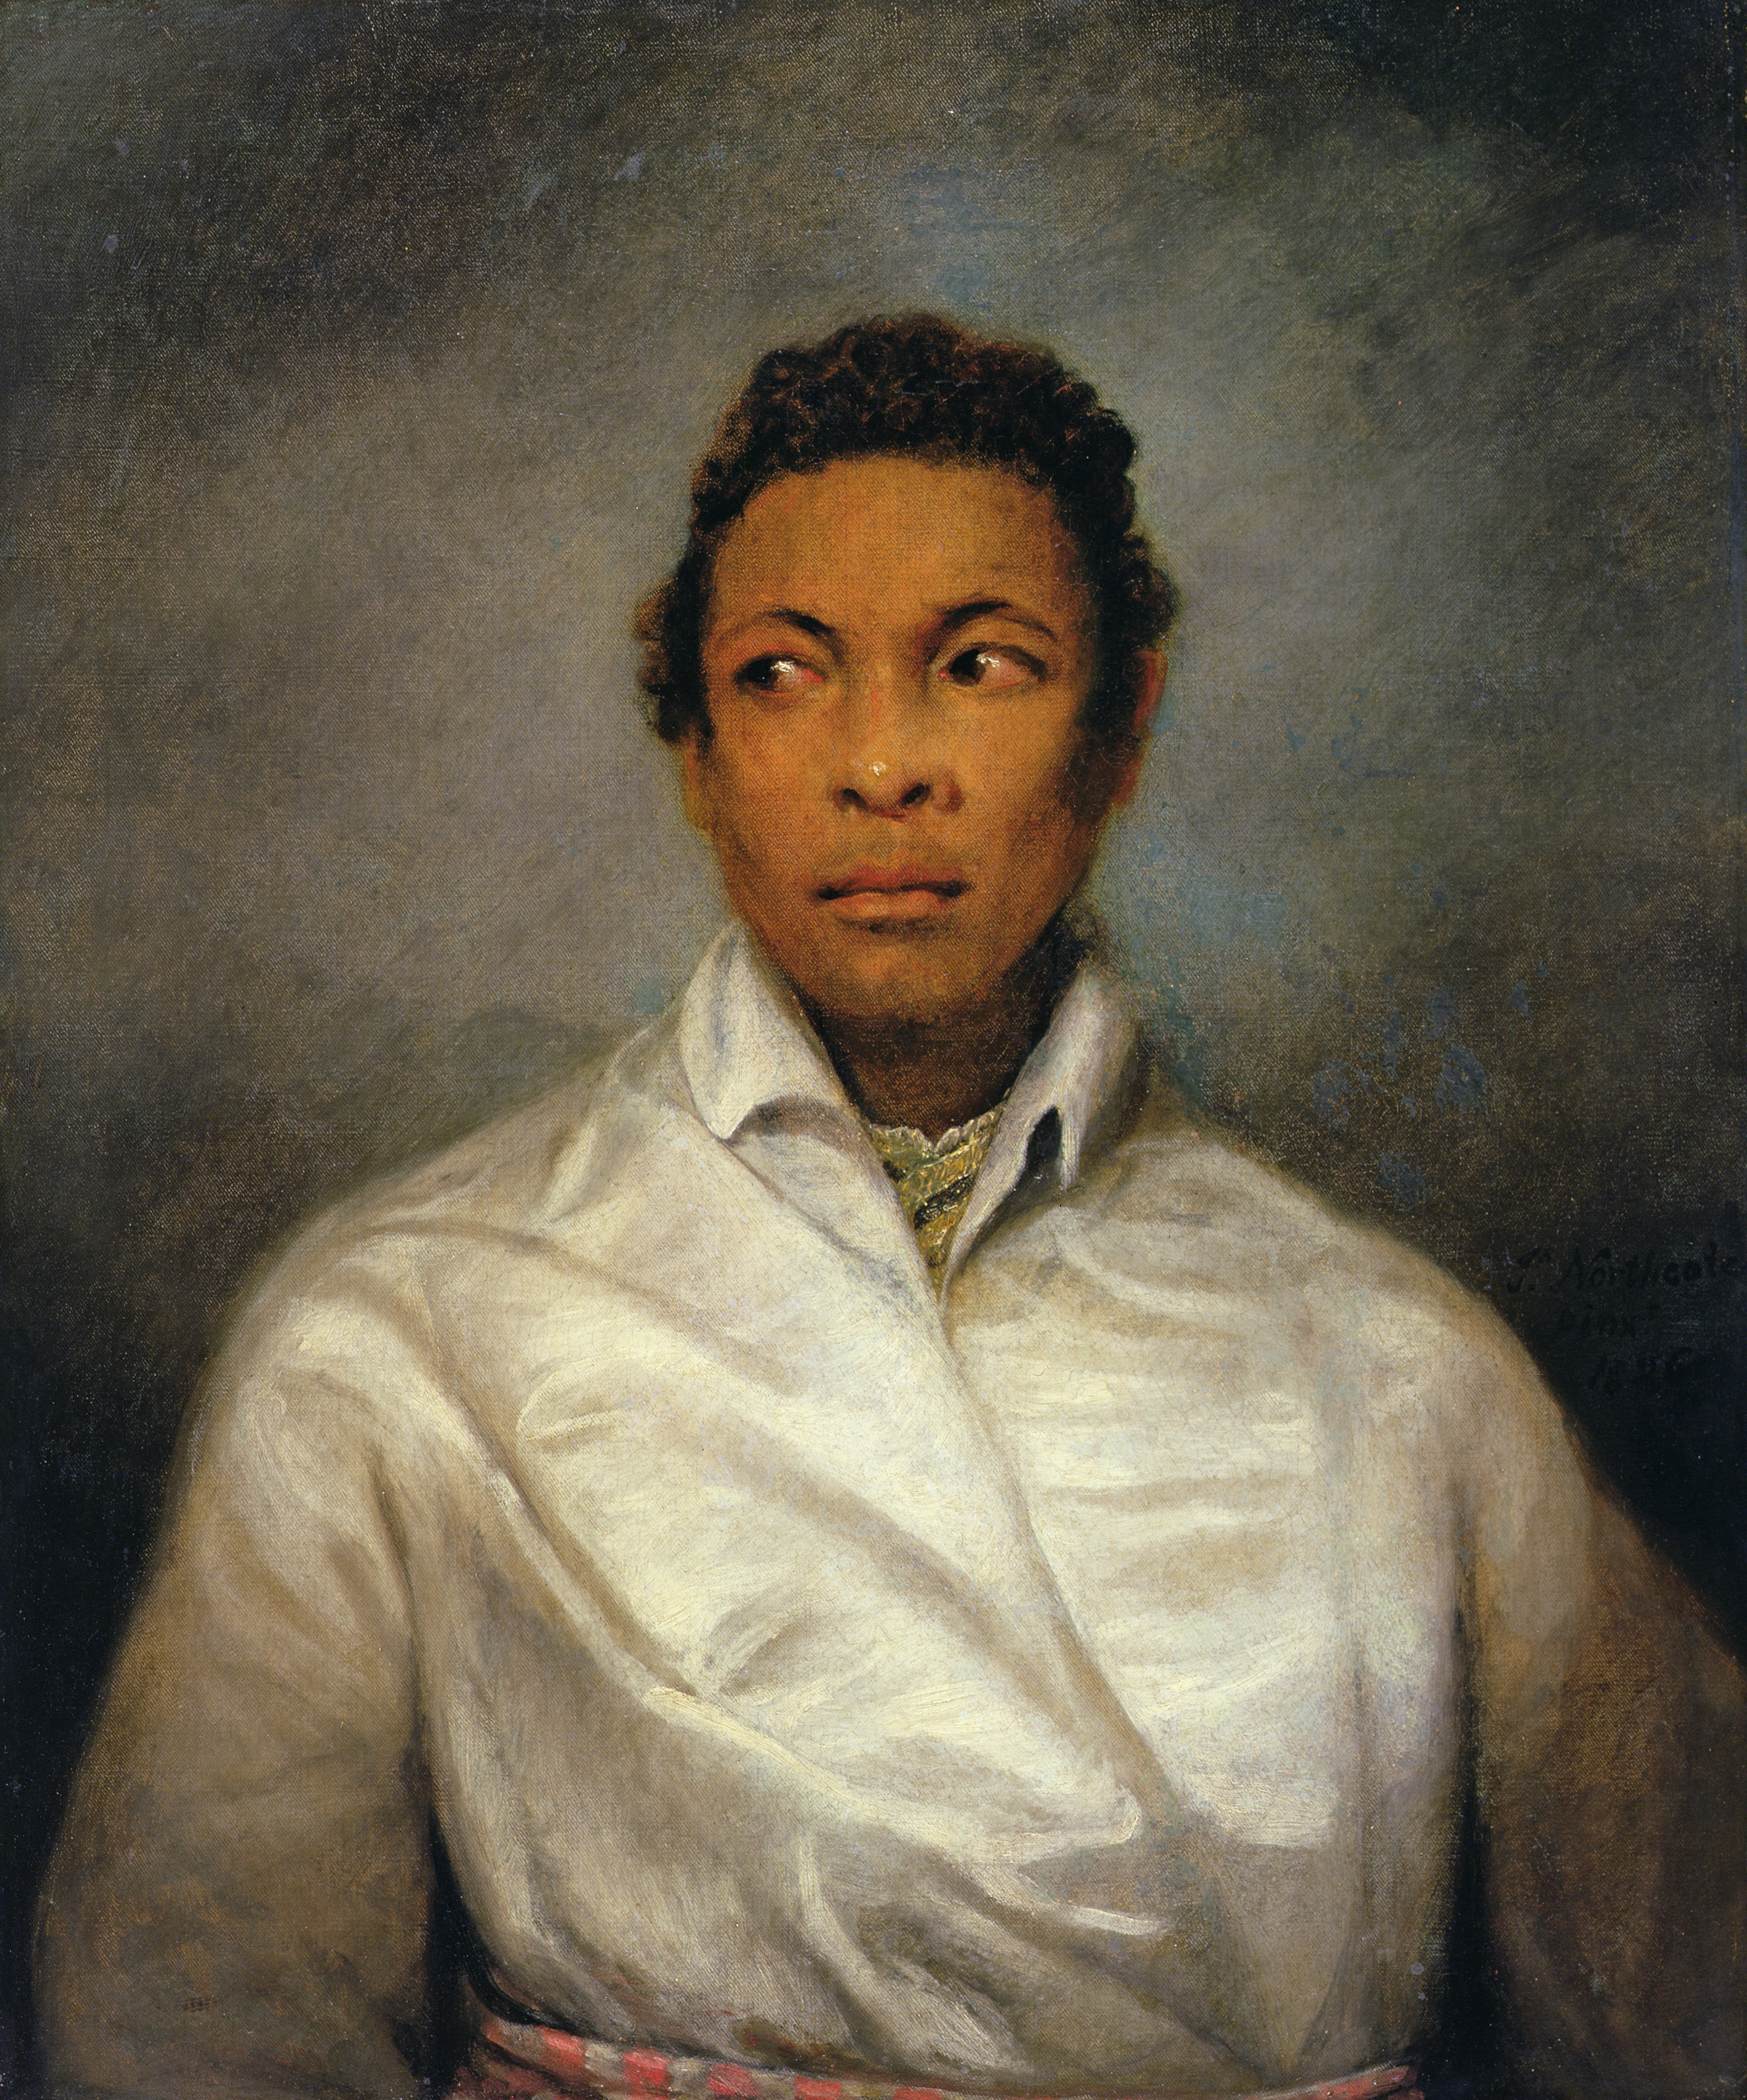 Ira Aldridge as Othello by James Northcote, 1826. Courtesy of Manchester Art Gallery. Aldridge was the first black actor to play Othello in Britain